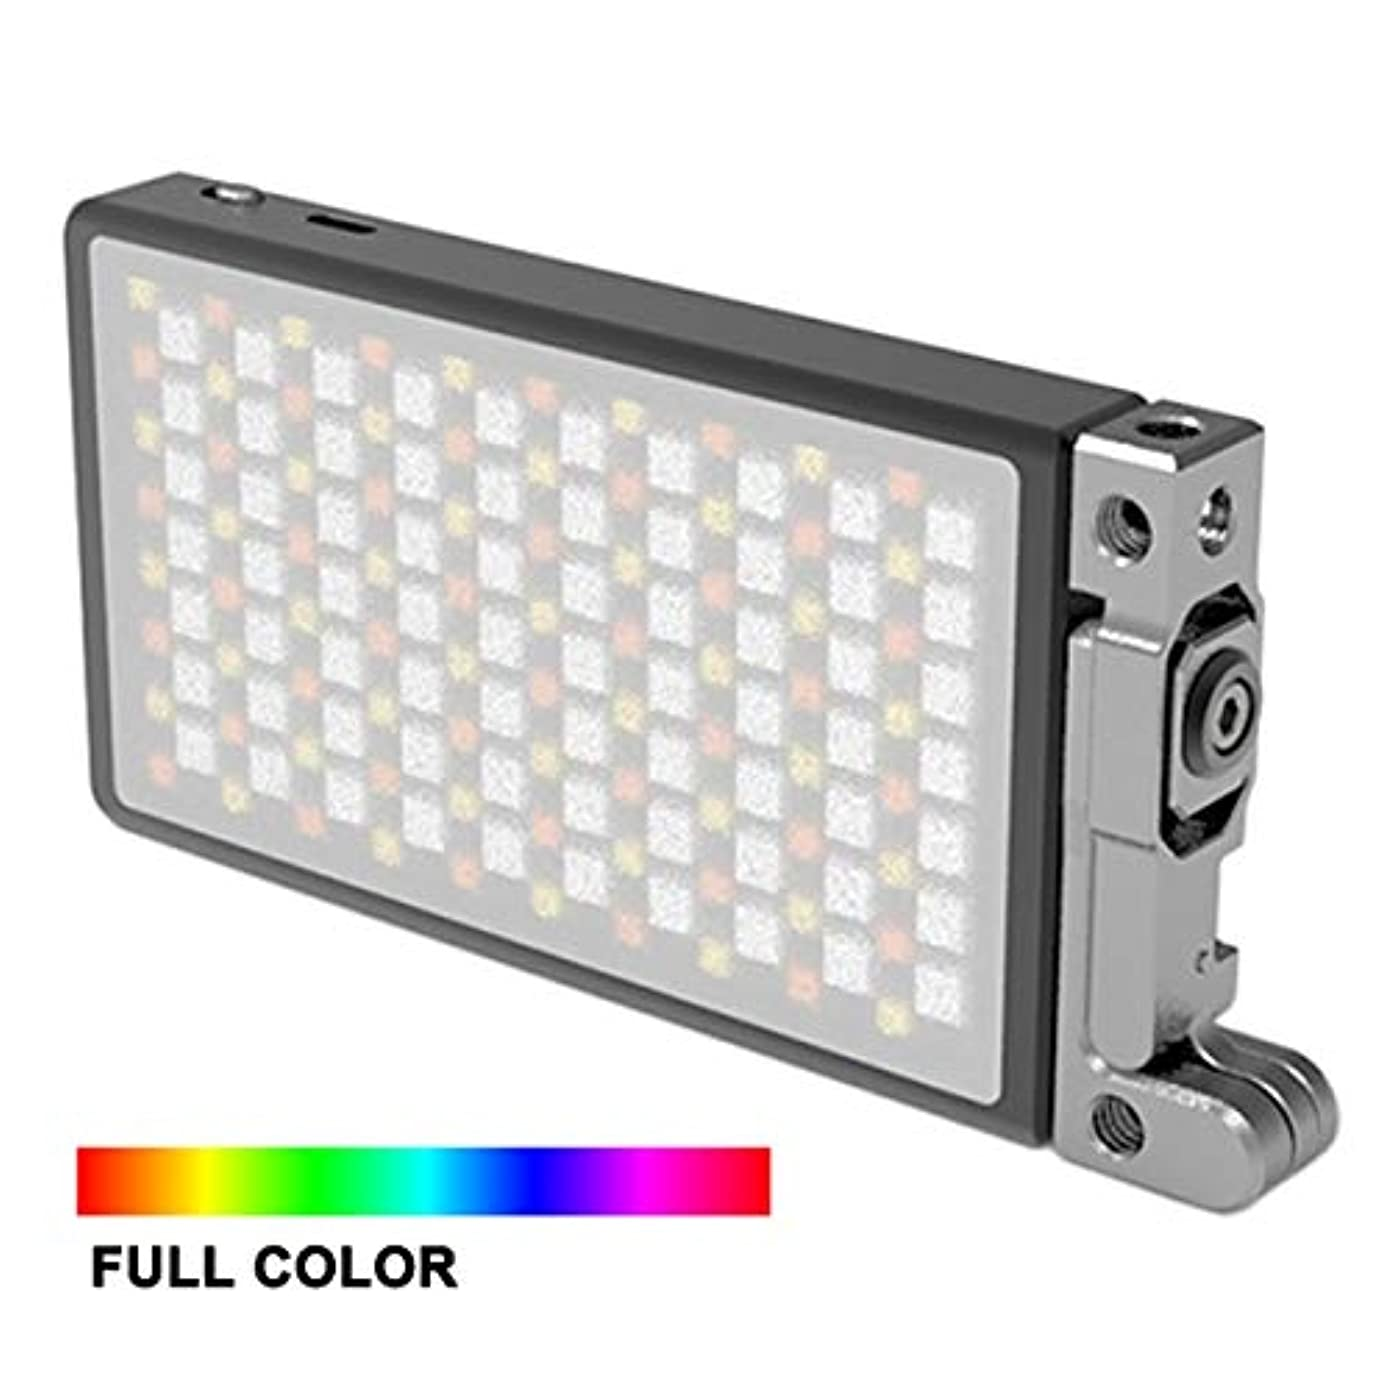 BOLING BL-P1 RGB LED Full Color Camera/Camcorder Light, Pocket Size Rechargeable Video Light with 2500k-8500k Color Range, 9 Common Scenario simulations with Premium Aluminum Alloy Shell